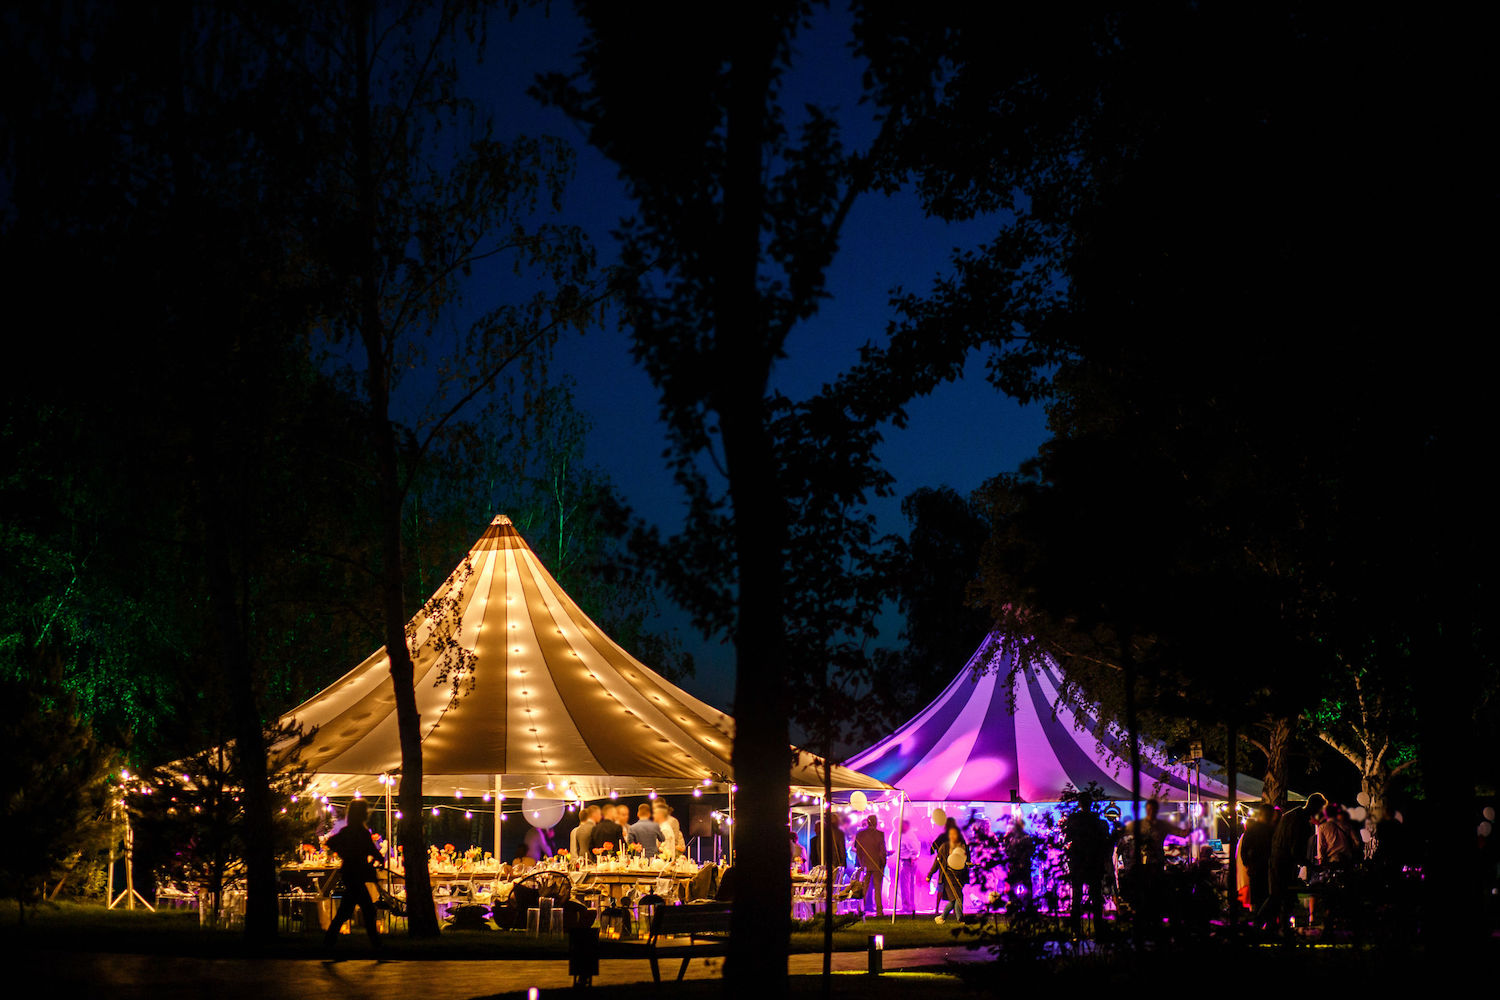 Colorful wedding tents at night. Wedding day